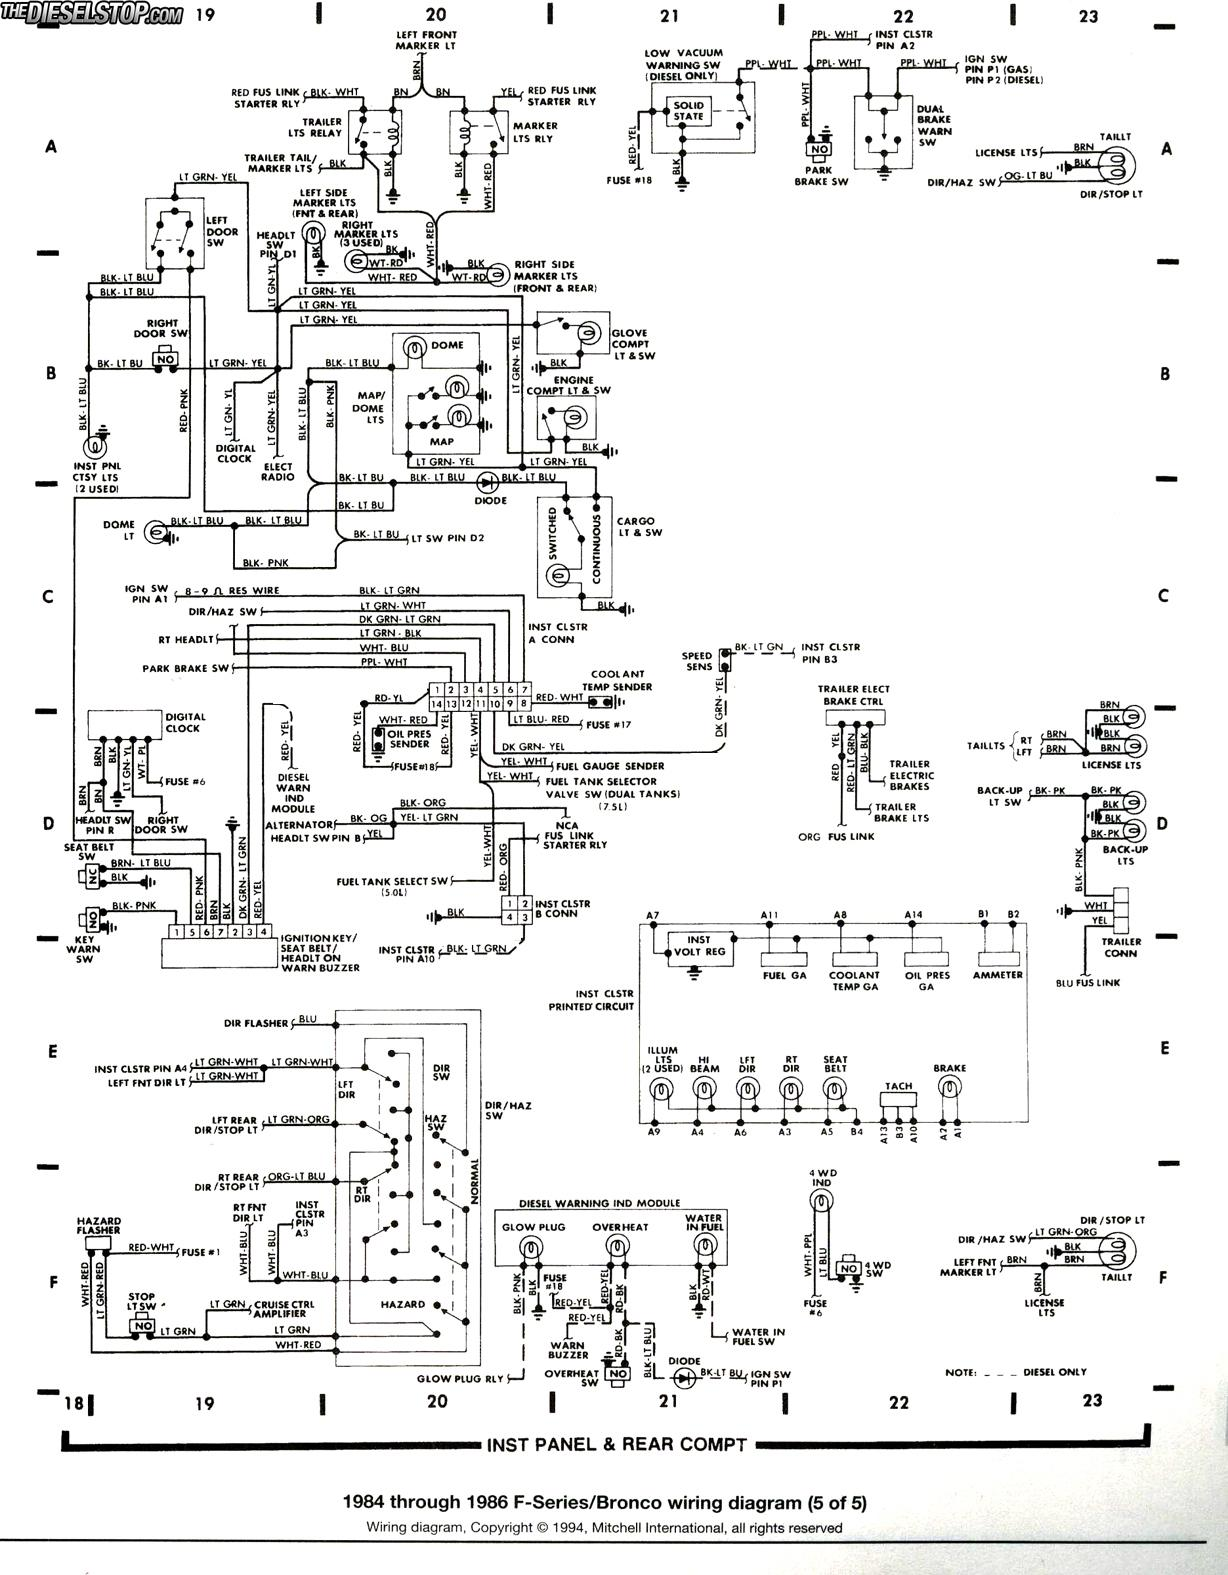 1986 F250 Frame Diagram Custom Wiring 85 Ford F 250 Building A Truck Up Elec Q S Diesel Forum Thedieselstop Com Rh Parts